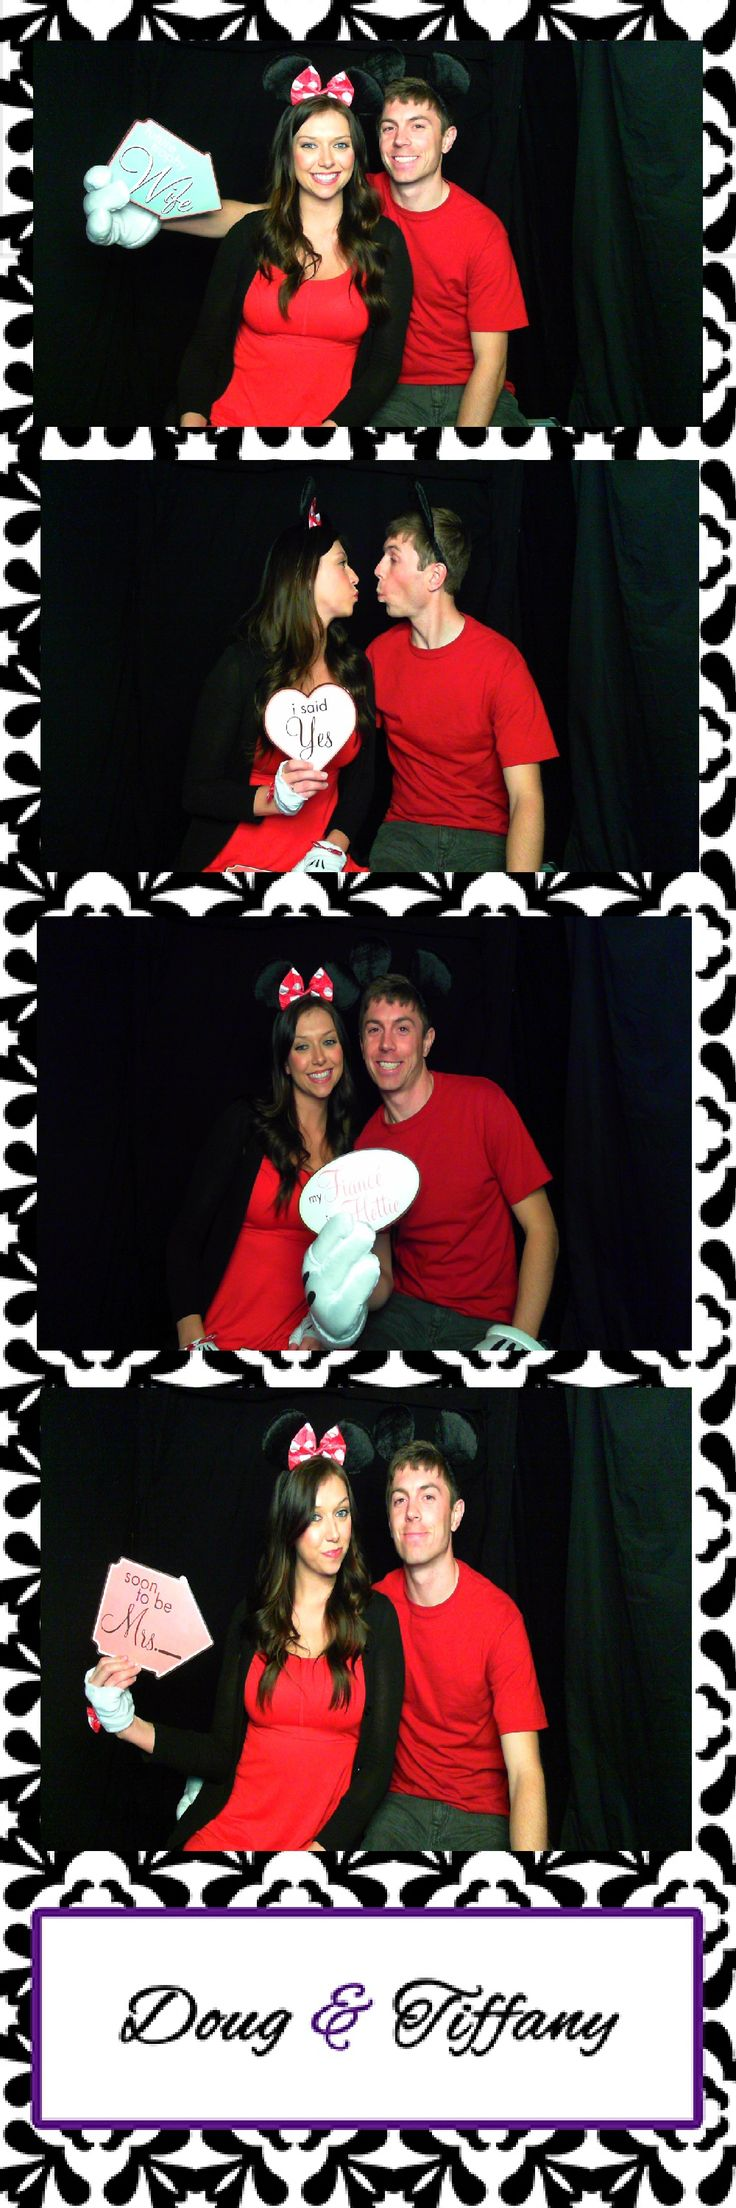 Mickey Mouse Costume Halloween Colorado Photo booths